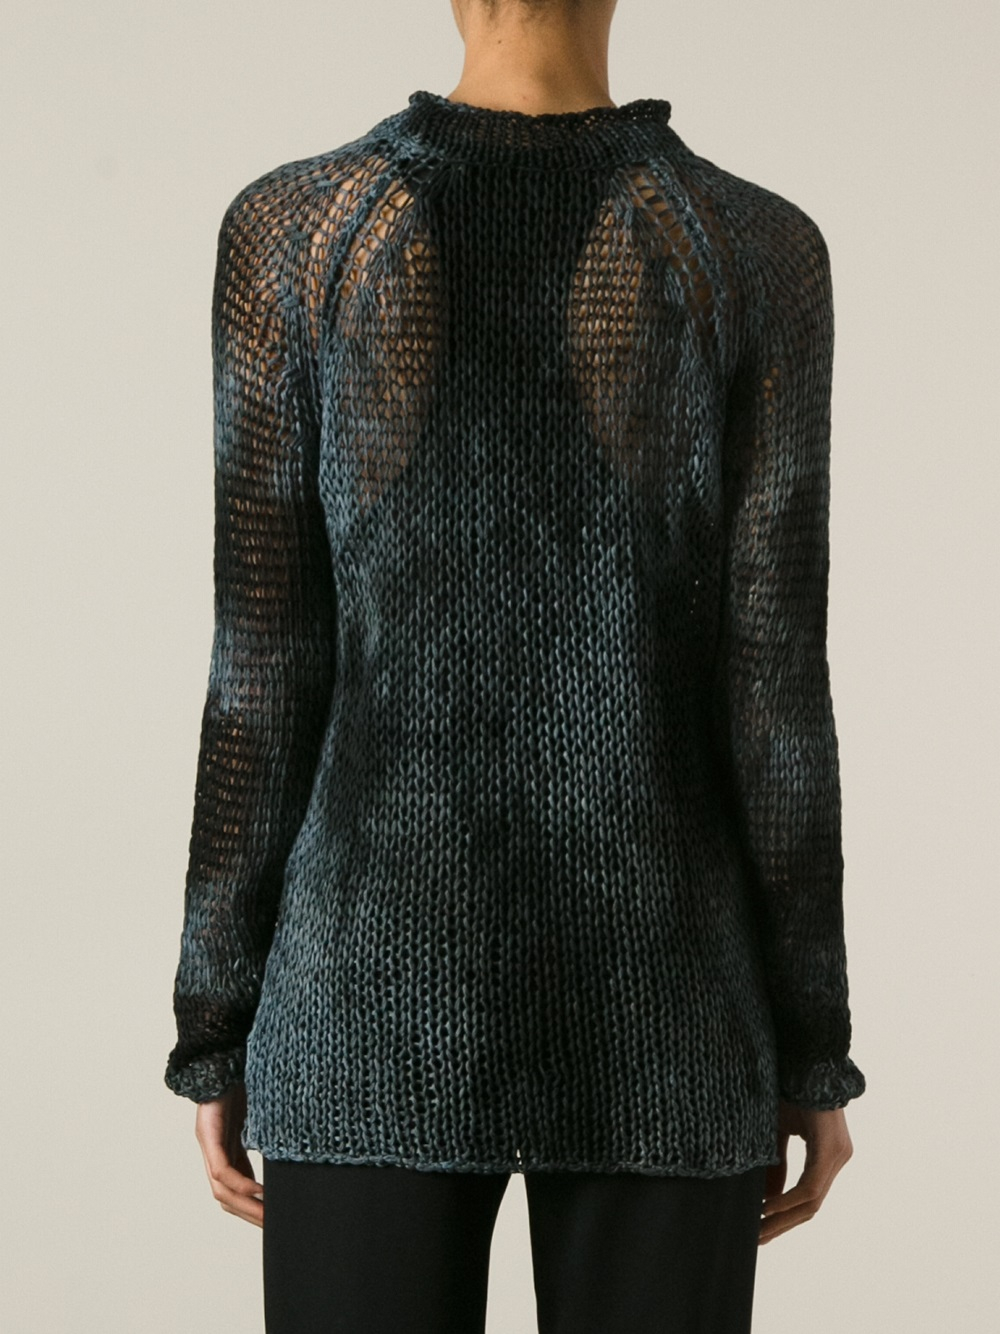 Avant toi Loose Knit Sweater in Gray | Lyst